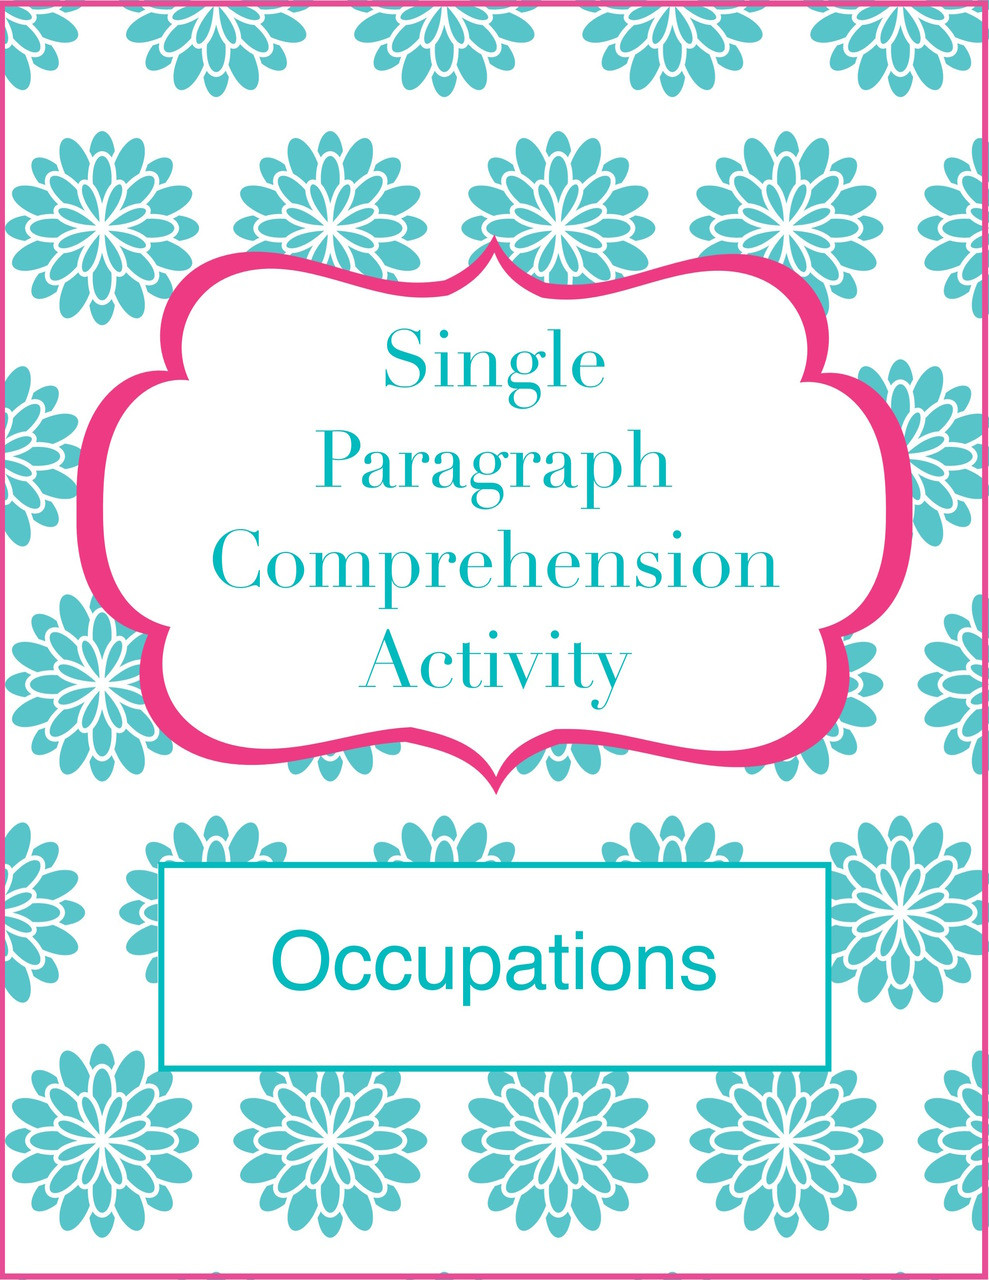 - Single Paragraph Comprehension (Occupation-Themed) - CALM Speech